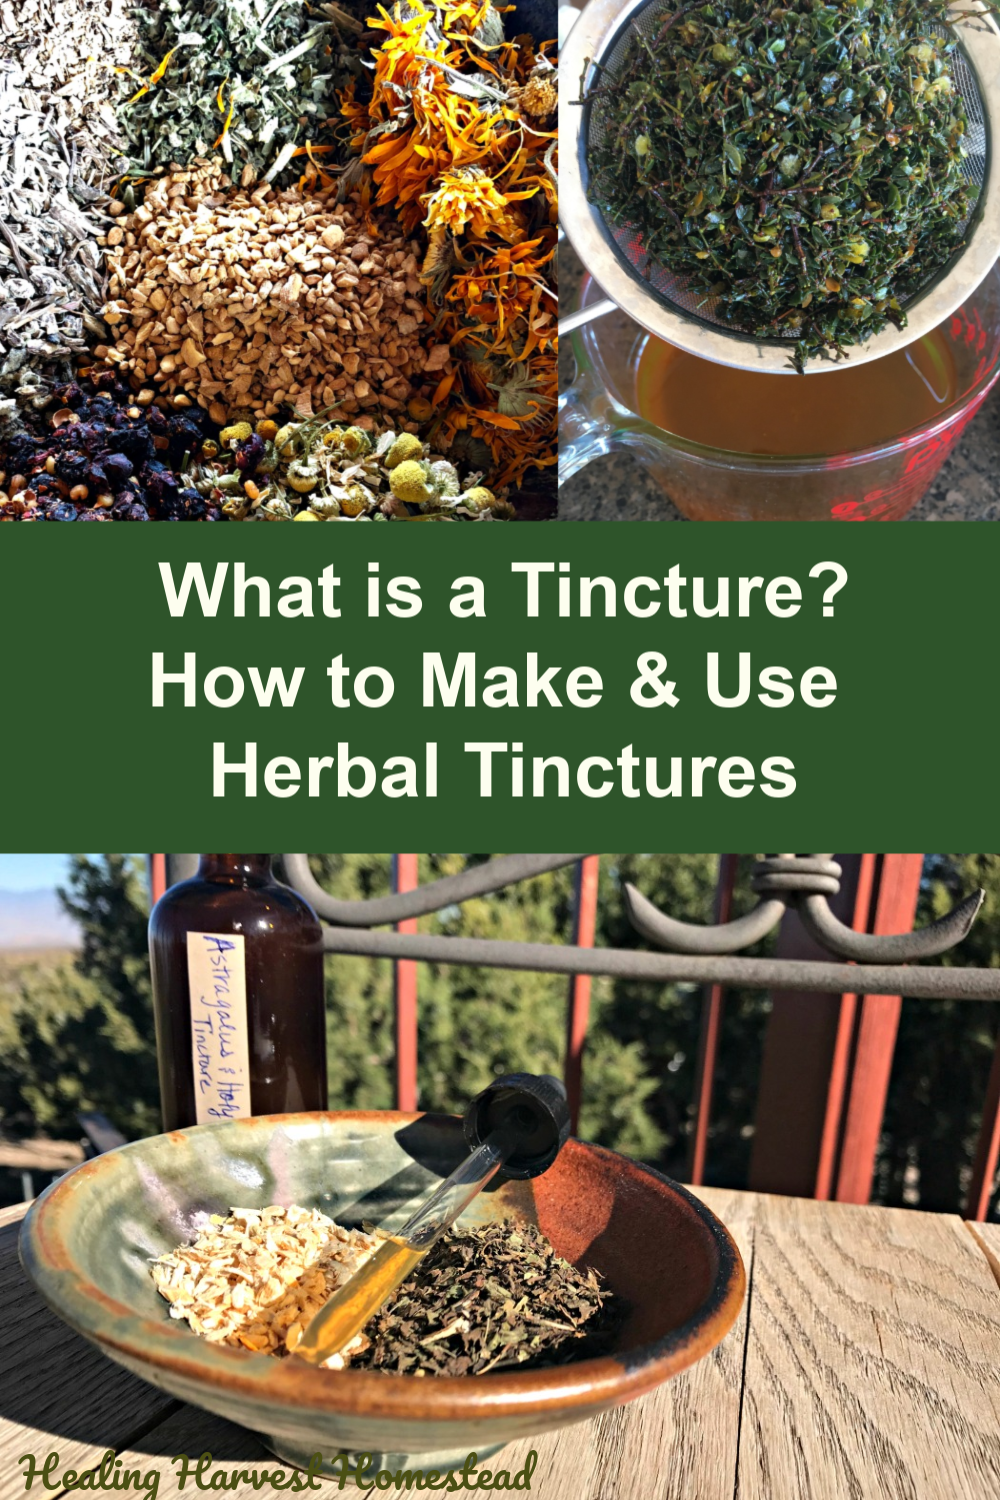 Have you ever wondered what on earth a tincture is? Well, here is your answer, along with how to make your own herbal tinctures. You'll also learn how to use them as well. Tinctures are one of the best home remedies you can learn to make. They are easy and simple to make, and best of all, they are safe, effective. They work wonders for your health! #herbal #tincture #howtomake #howtouse #homeremedy #health #healingharvesthomestead